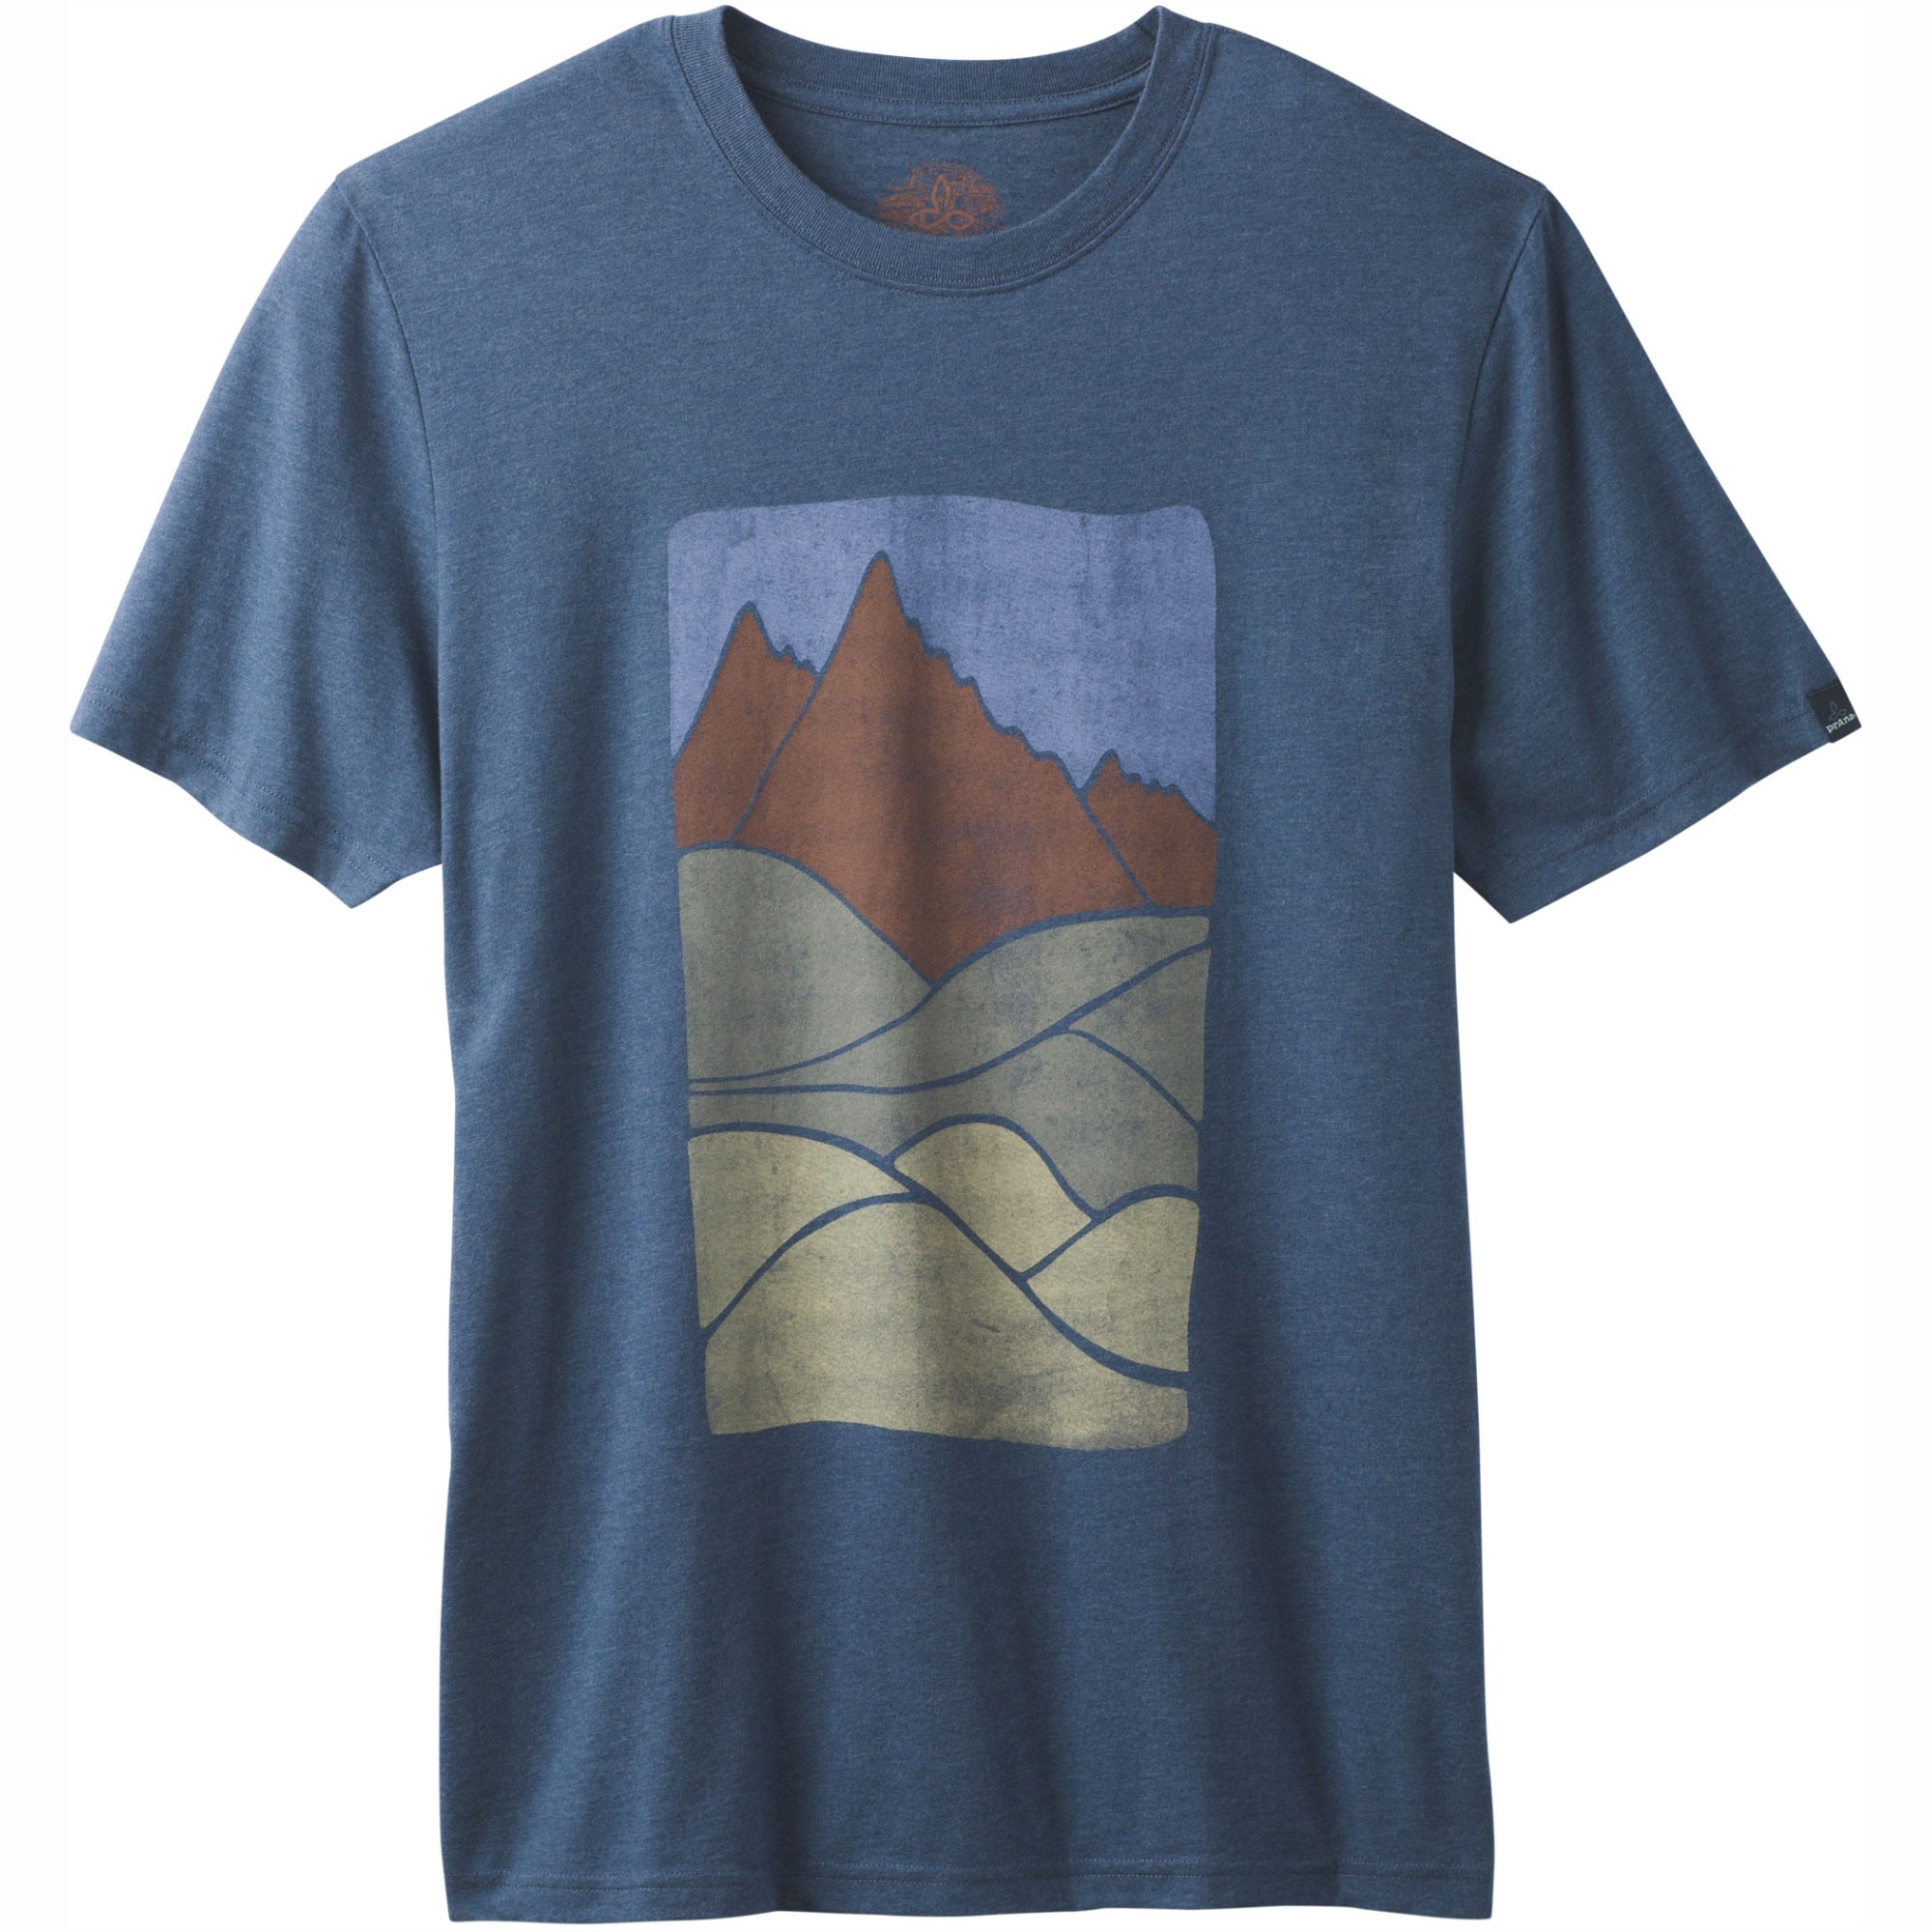 Prana Ezer T-Shirt - Denim Heather